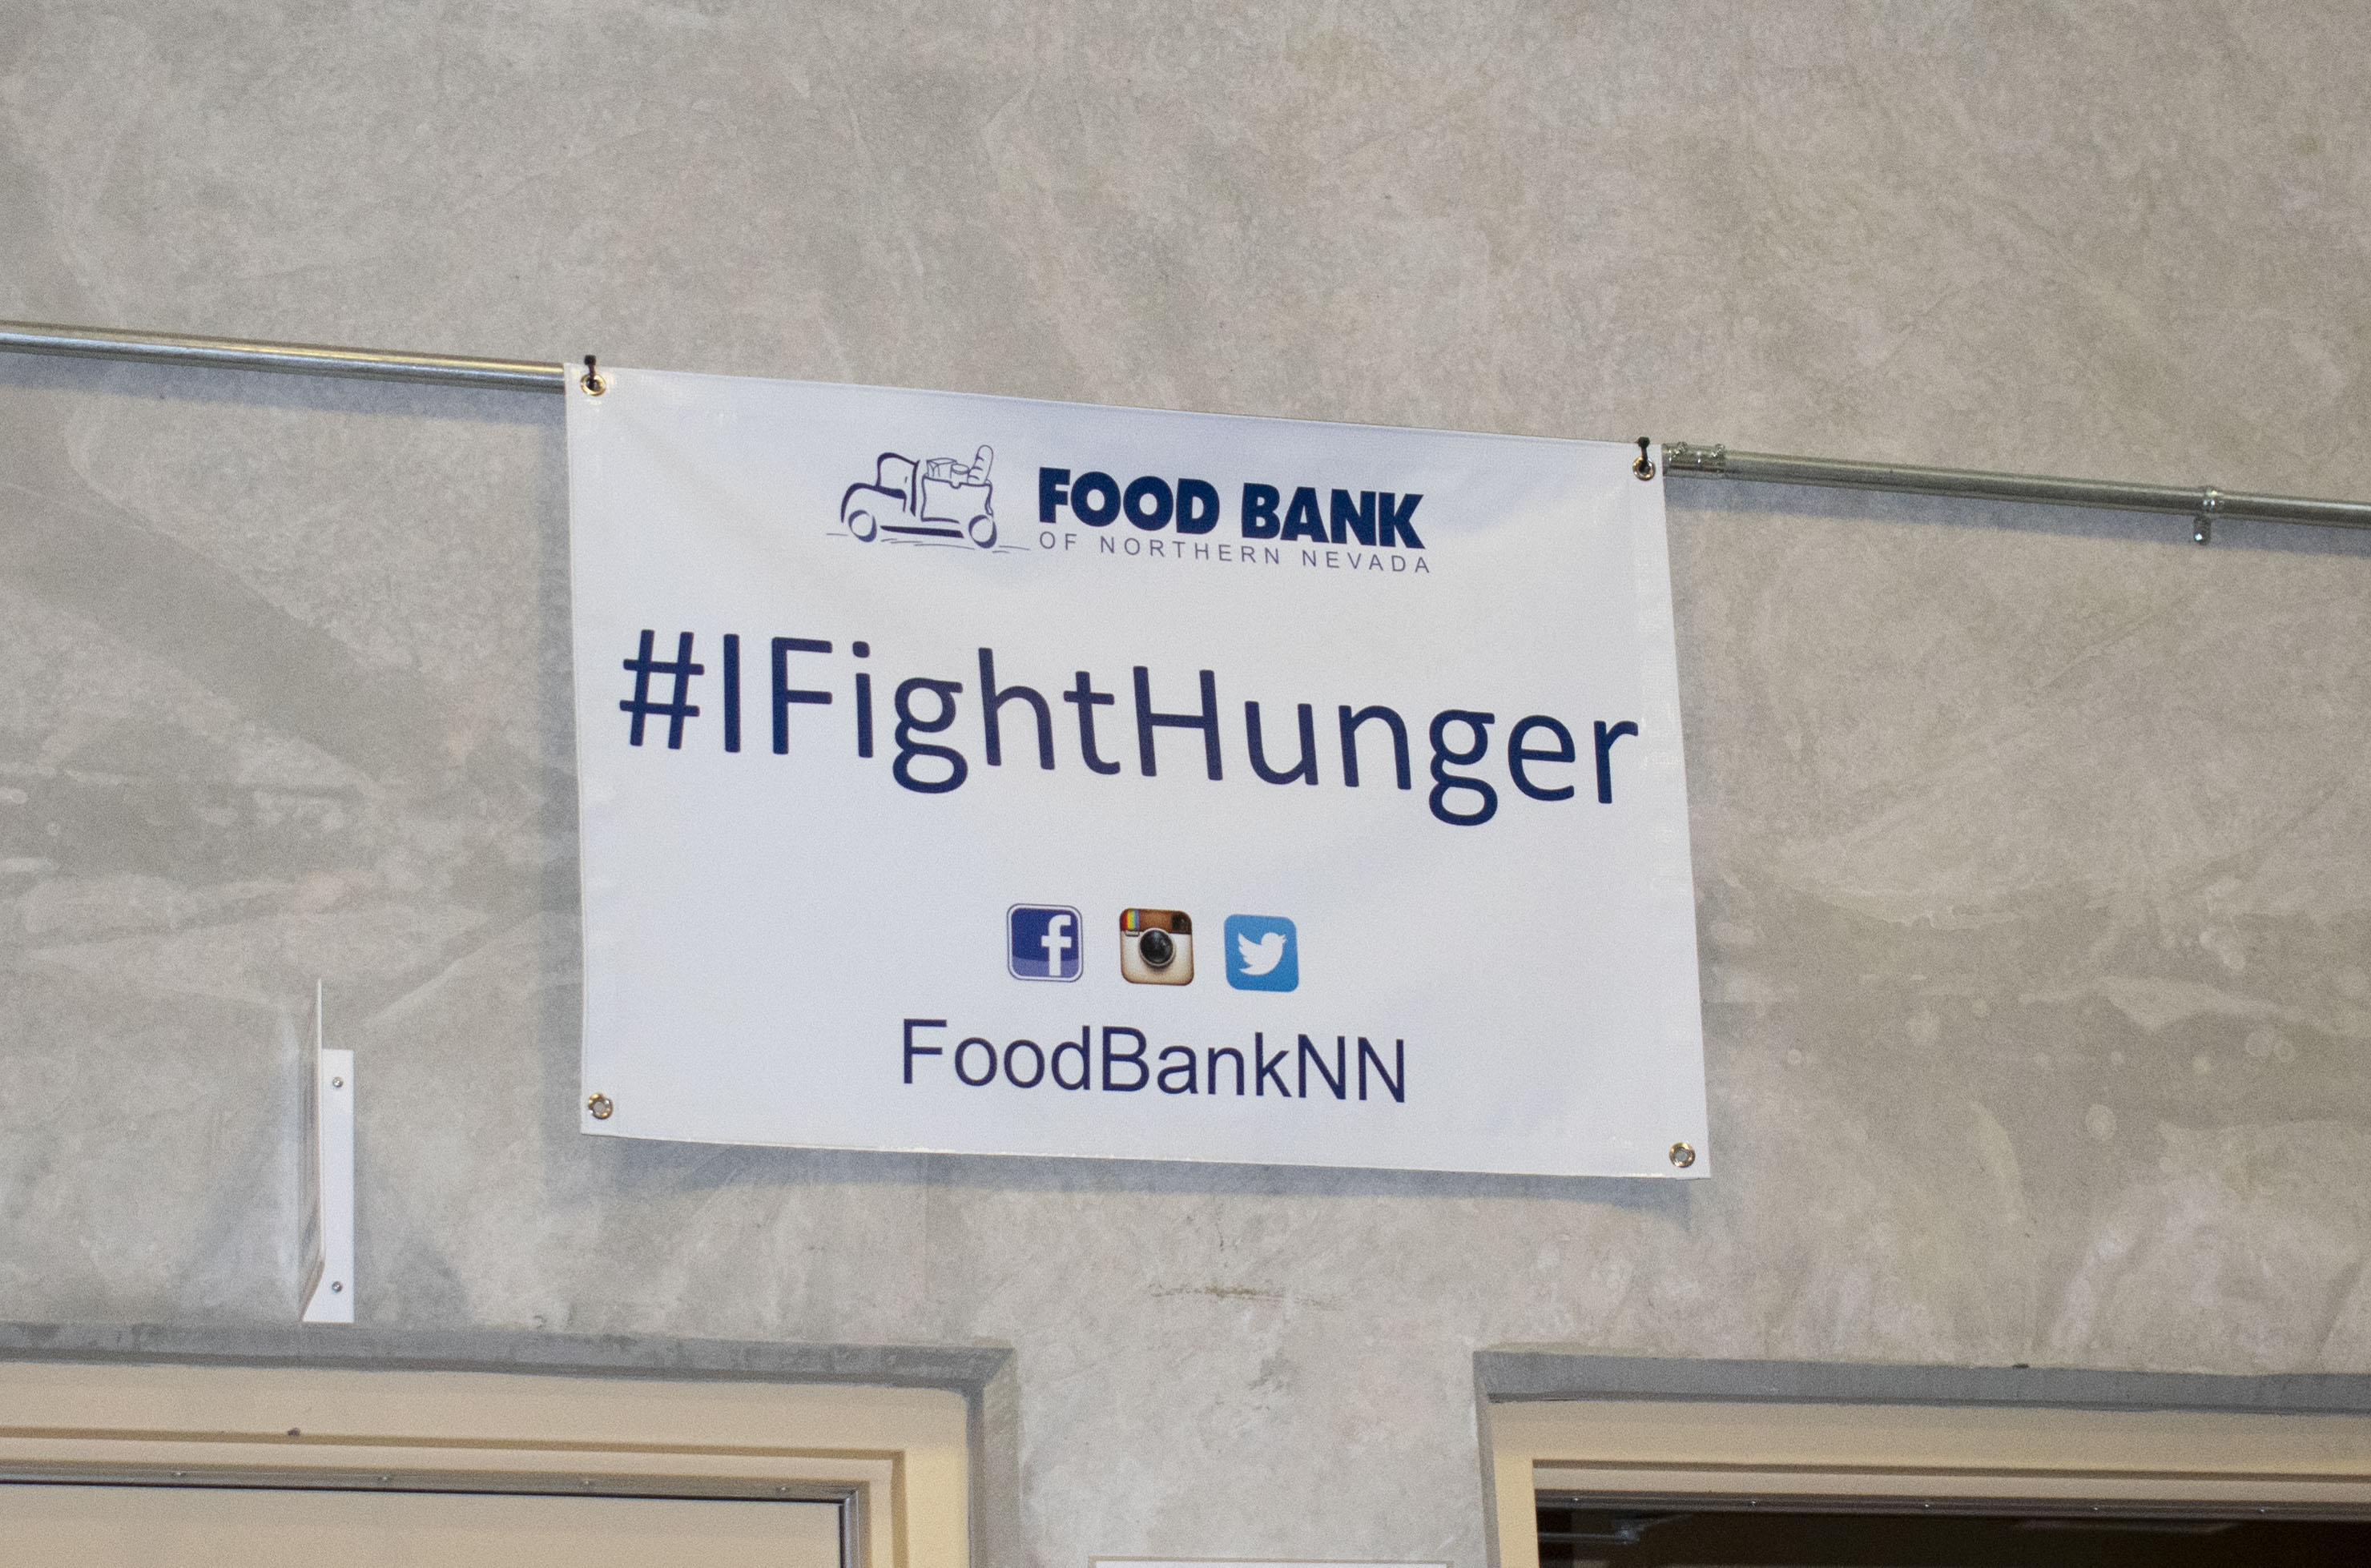 Food Bank of Northern Nevada Social Media